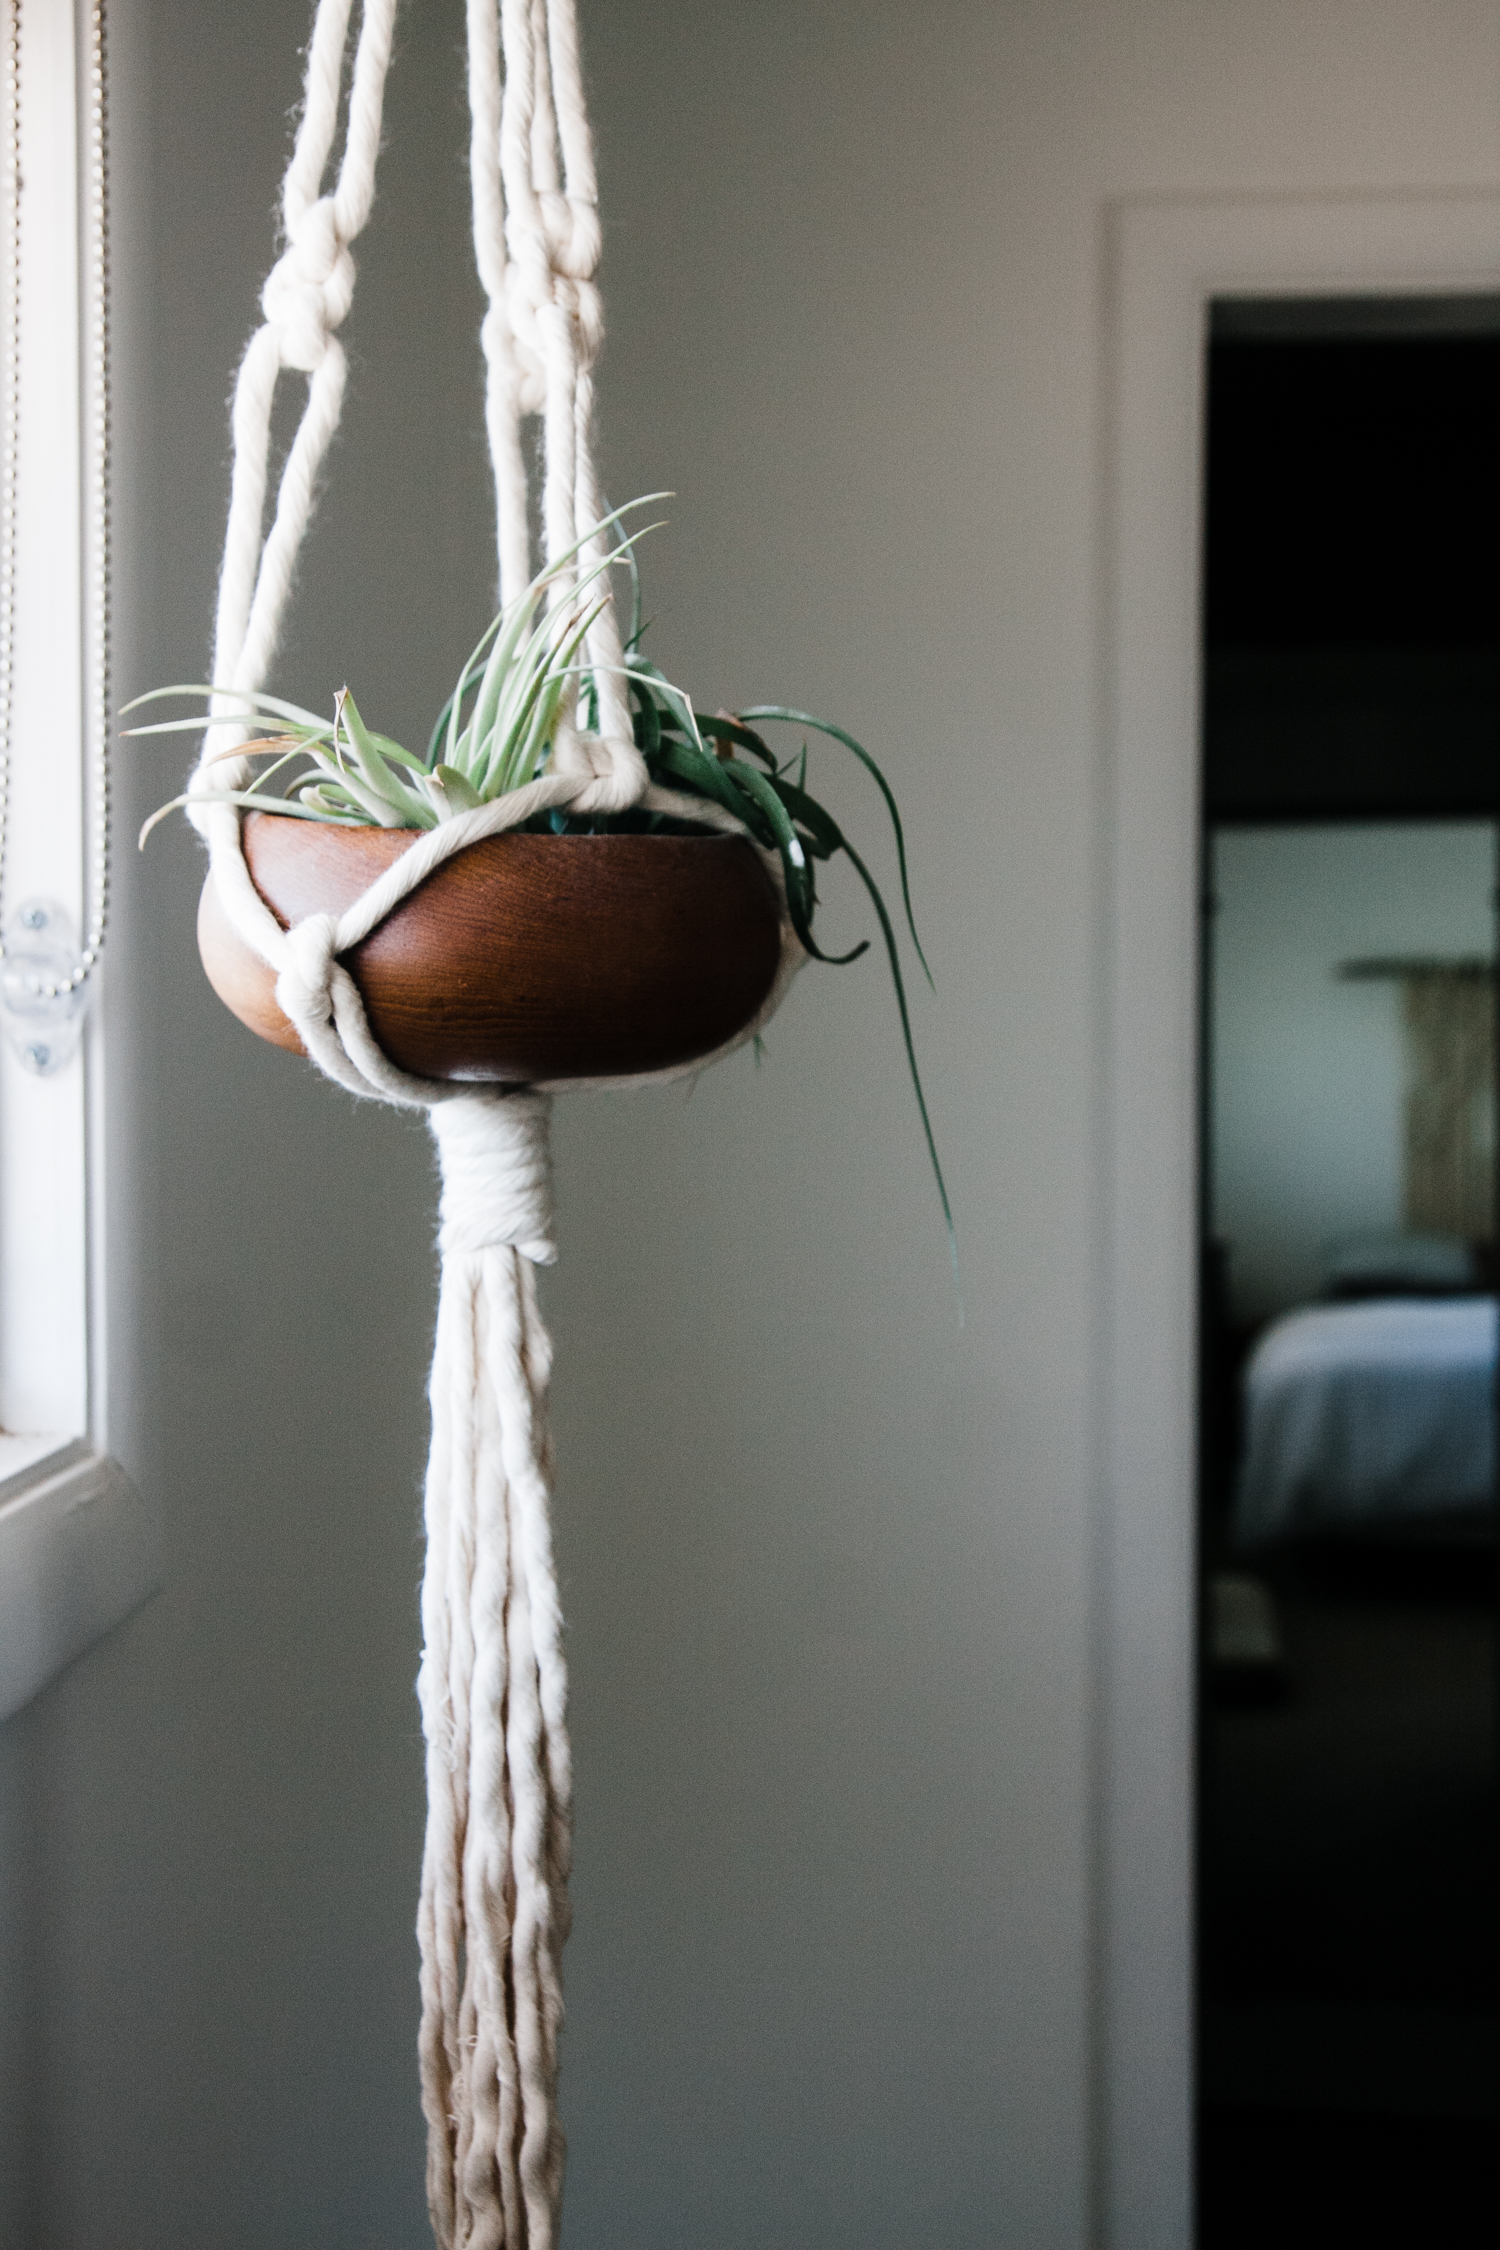 My  House Sparrow  macrame plant hanger is the only thing on this window wall. Keeping it simple or just incomplete? You tell me.